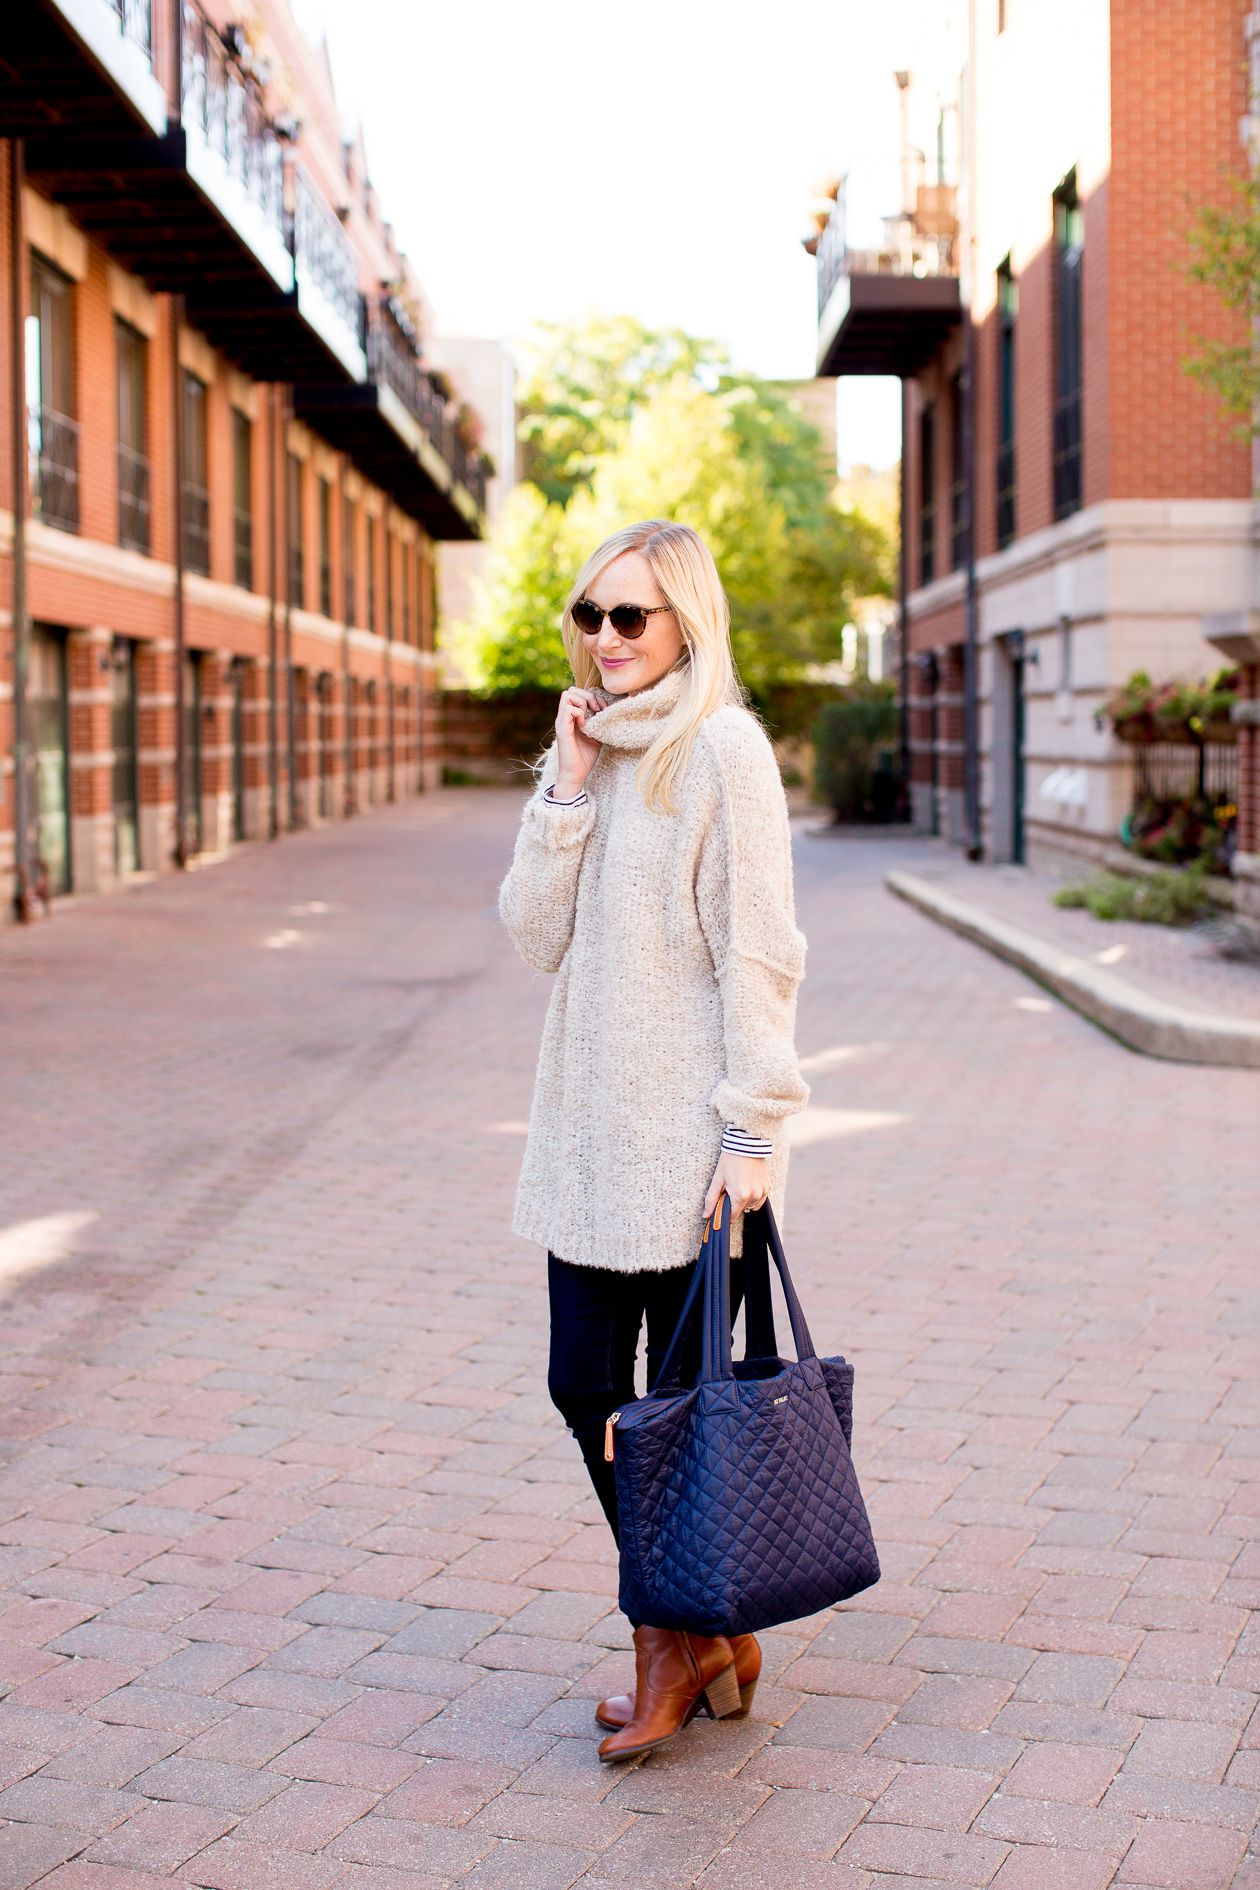 Free People Sweater / Hudson Jeans / Lands' End Booties / MZ Wallace Tote